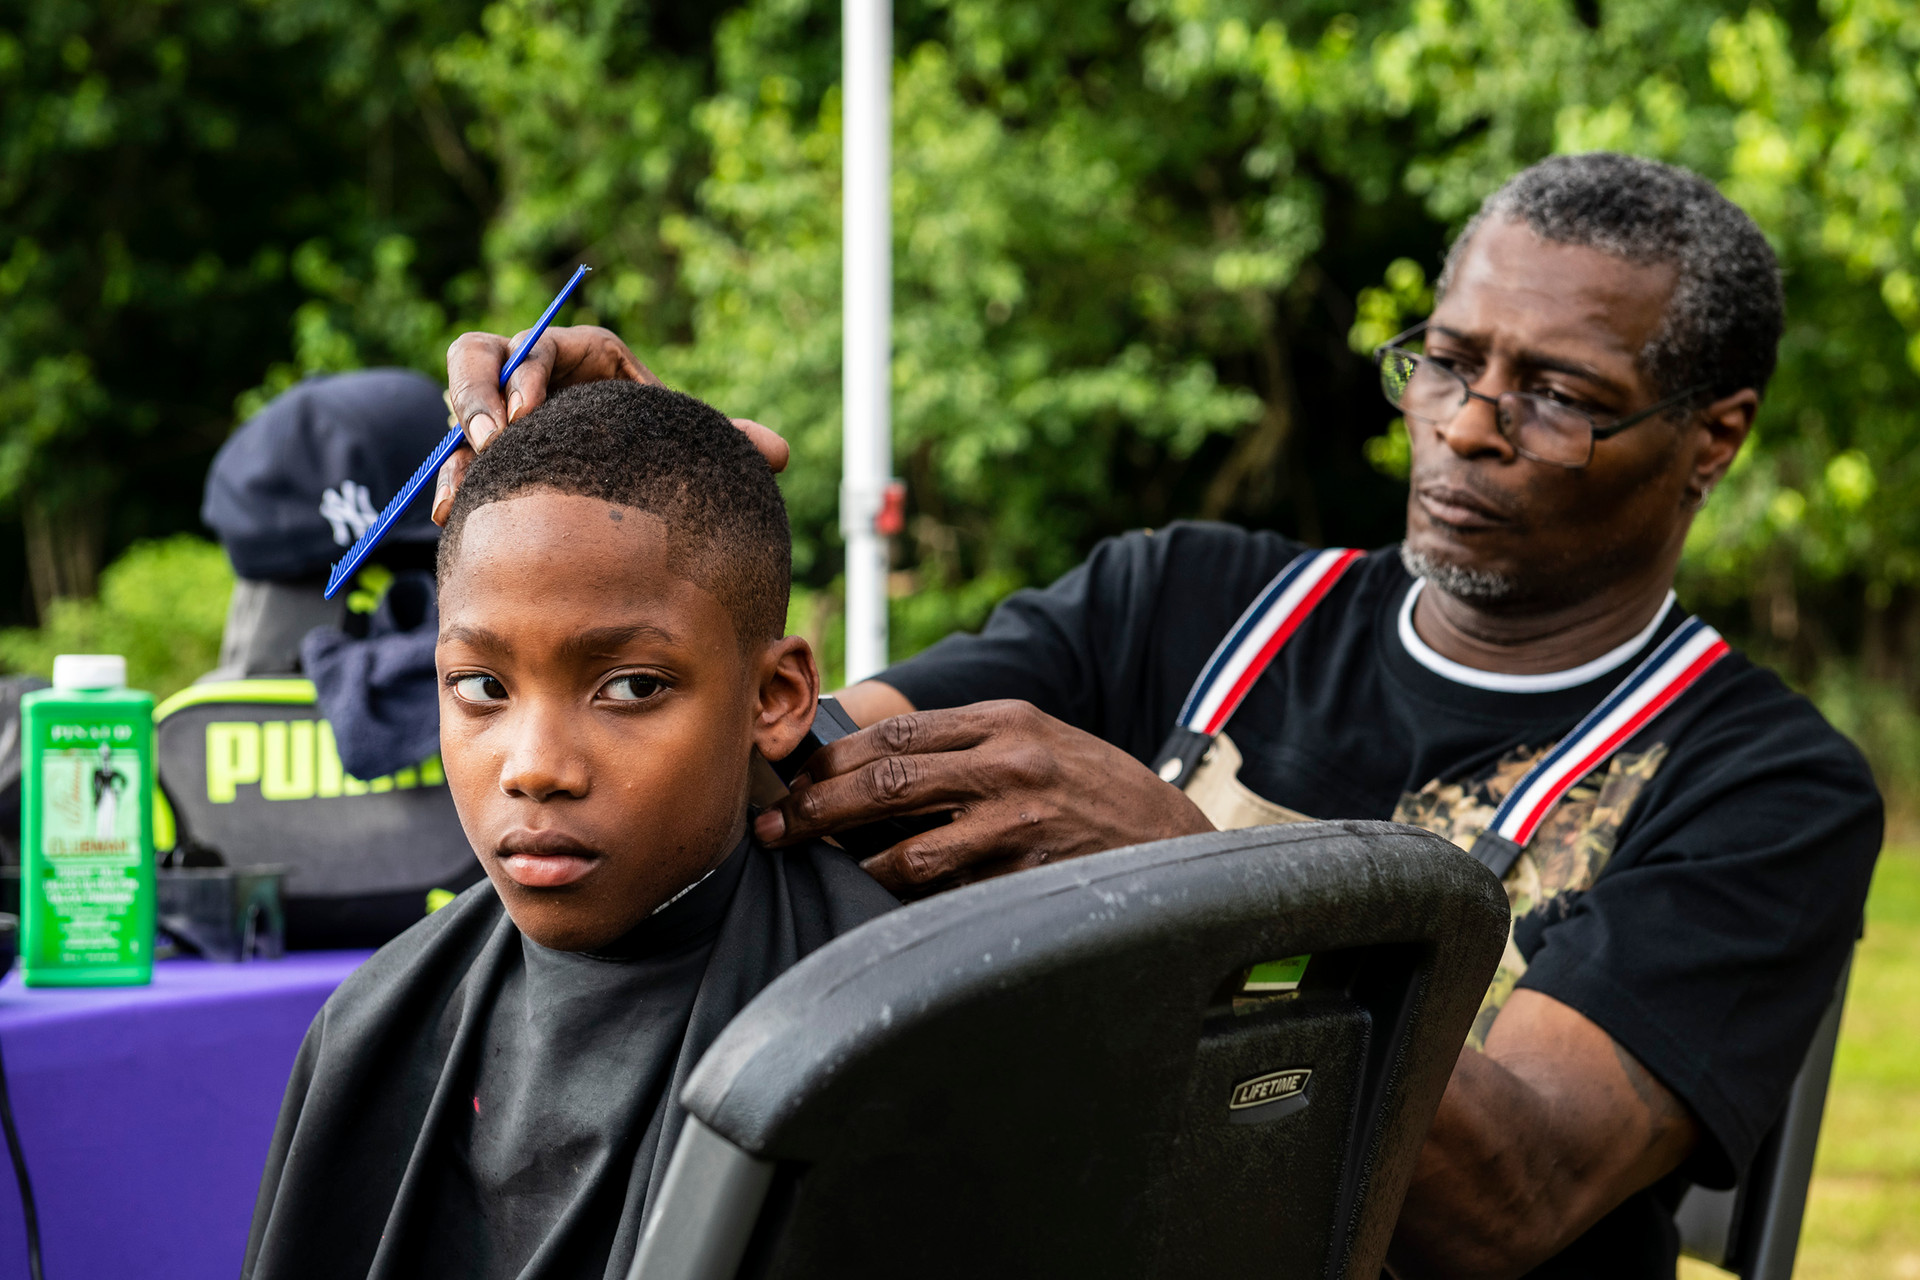 """Kross Boxley, 10, McKees Rocks, left, gets a haircut from Victor """"Roc"""" Miles Sr., of Braddock and barber at Unlimited Styles in Rankin, left, during the second annual Antwon Rose II Community Birthday celebration, Friday July 11, 2019, at Hawkins Village in Rankin. The Antwon Rose II Community birthday celebration featured food, vendors, bounce houses, live performances and a free book-bag giveaway for 250 youth."""